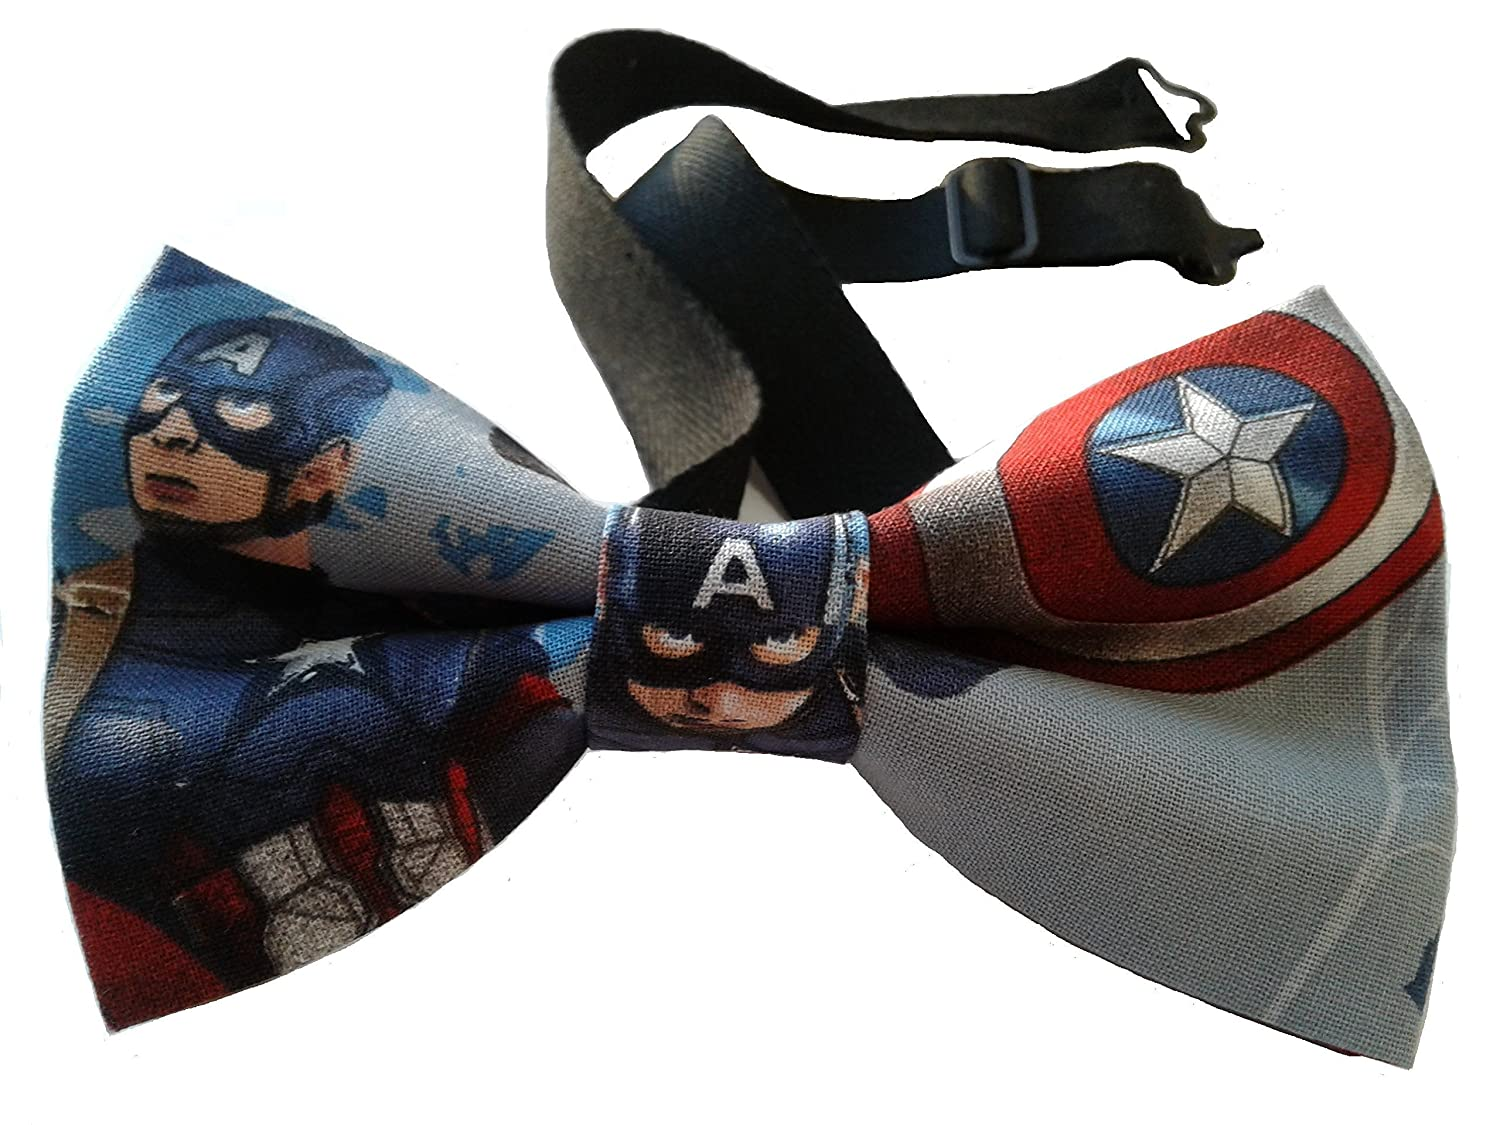 "Captain America Patriotic Bow Tie, Pretied, Cotton Adult 4.5"" x 2.5"" Adjustable to 18 Inches"